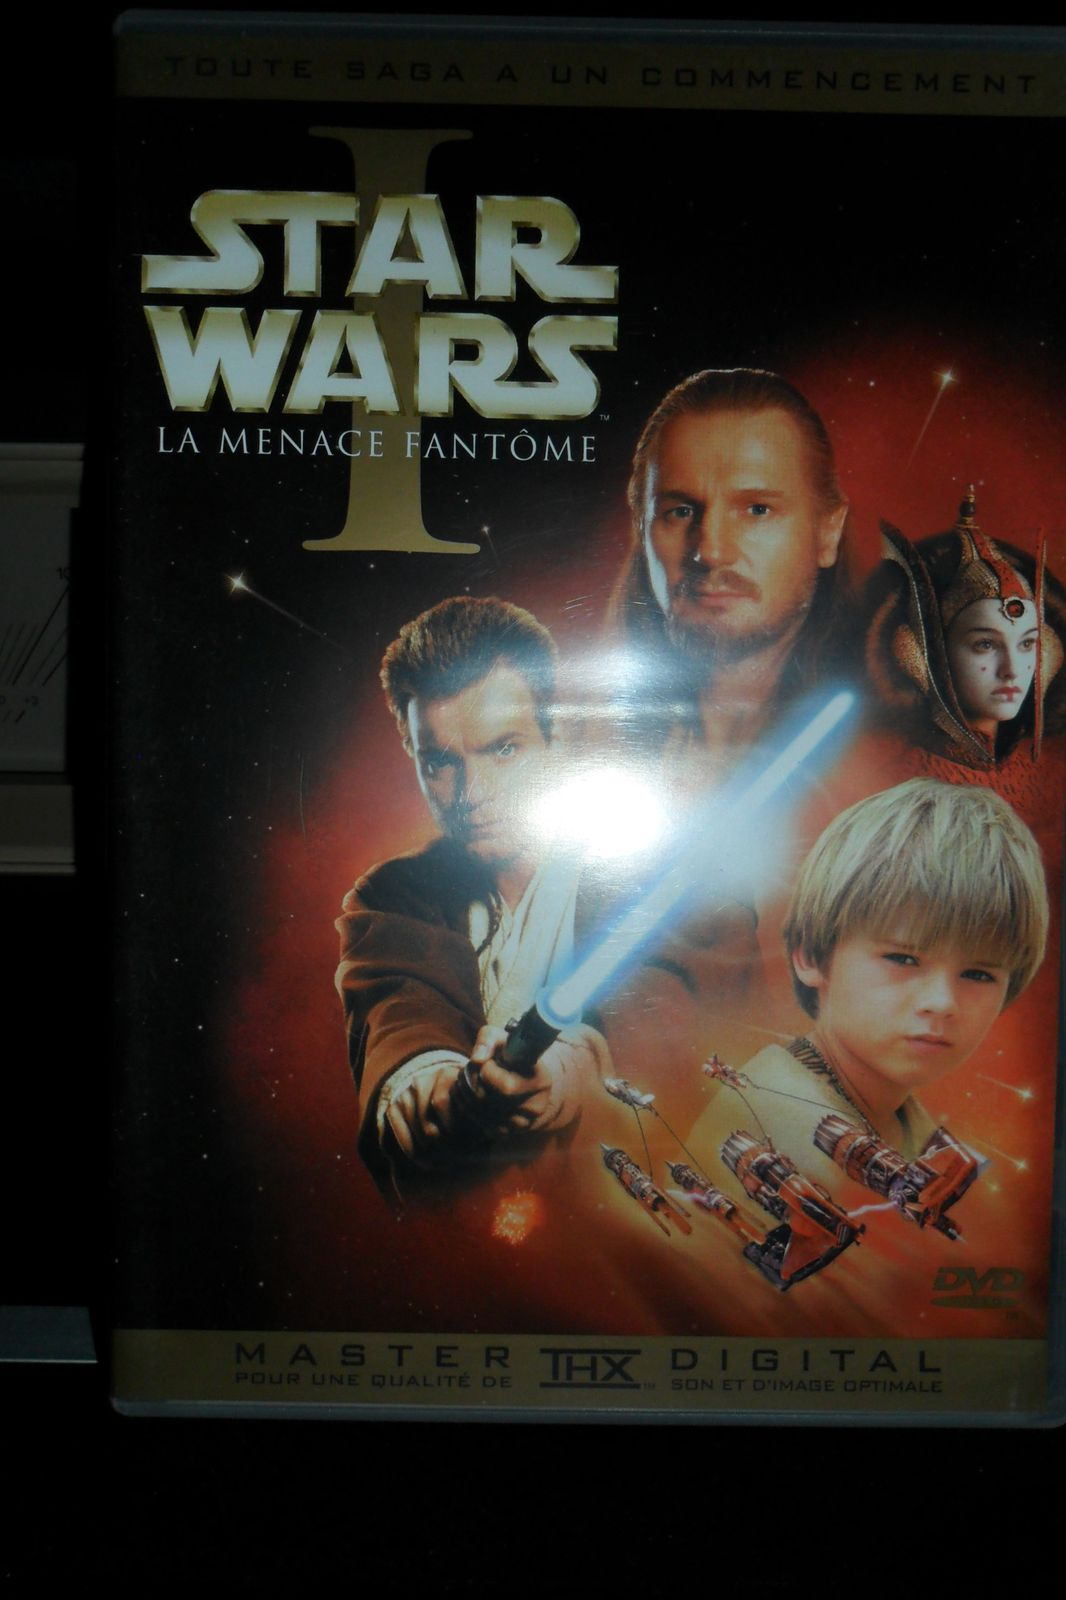 http://idata.over-blog.com/3/18/35/93/jano/film-star-wars/SAM_0017.JPG